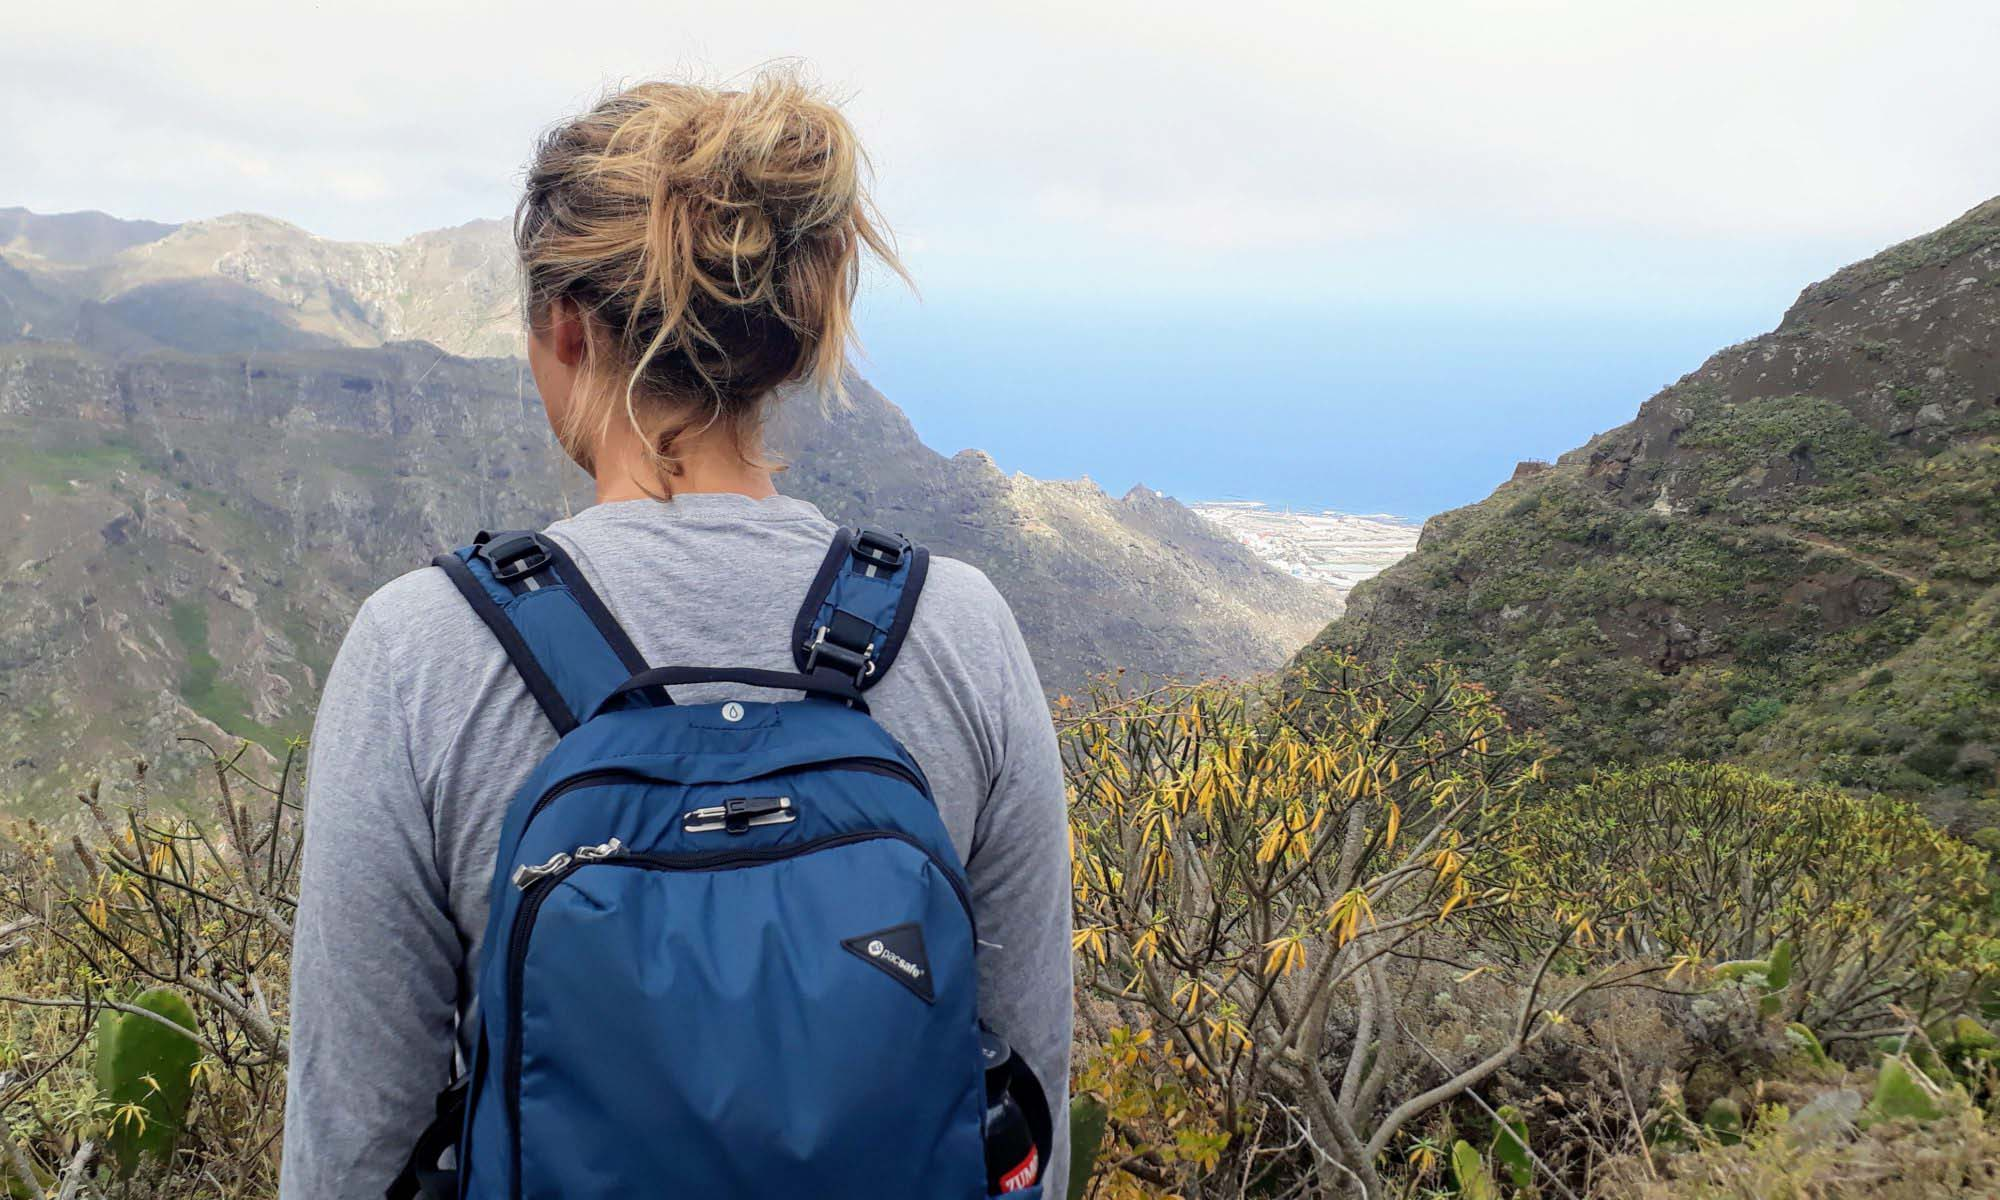 Hiking in Tenerife: The 5 Most Beautiful Routes